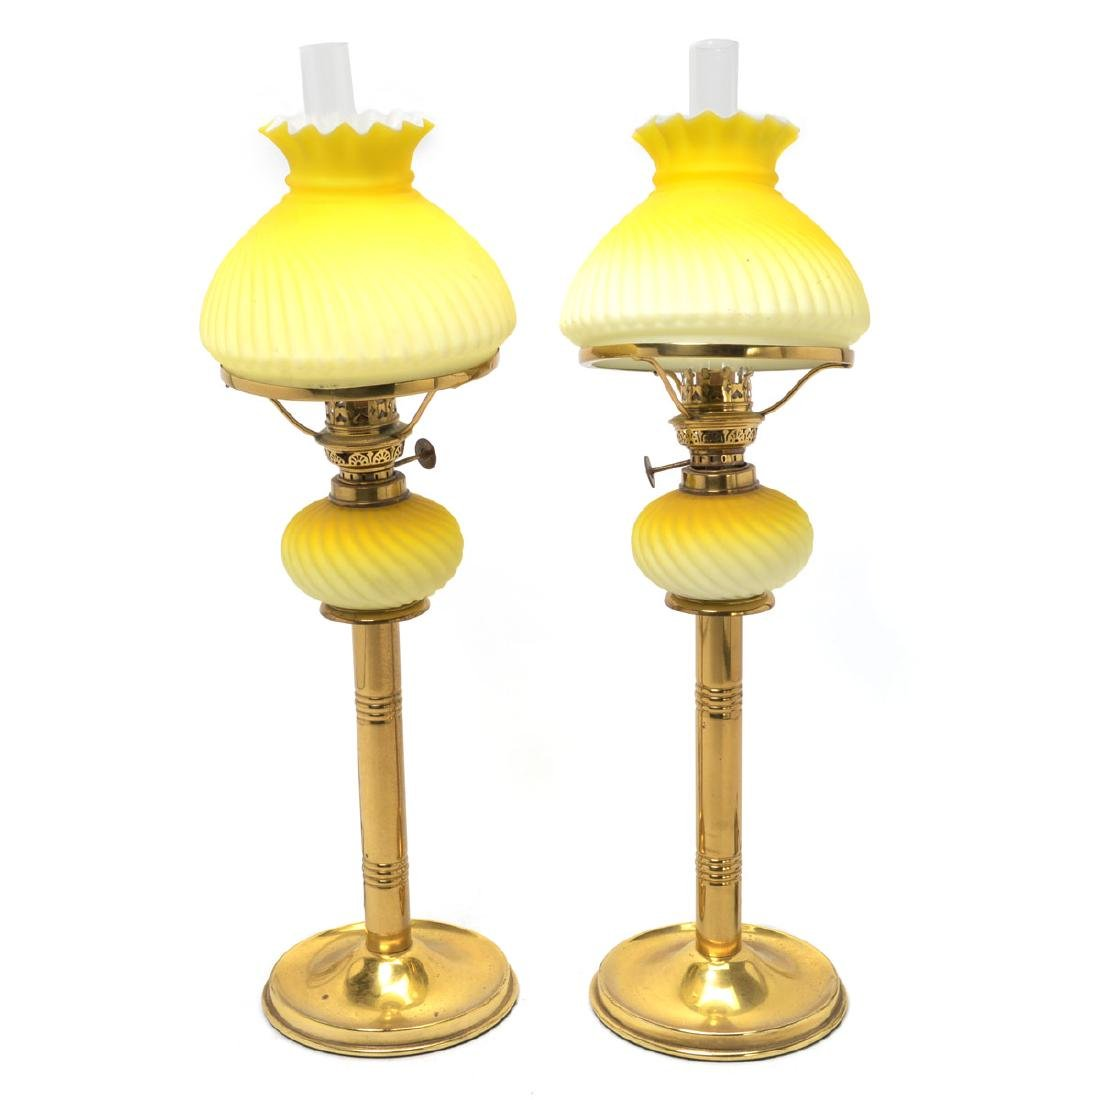 Pair of English Brass and Satin Glass Fluid Lamps, Now